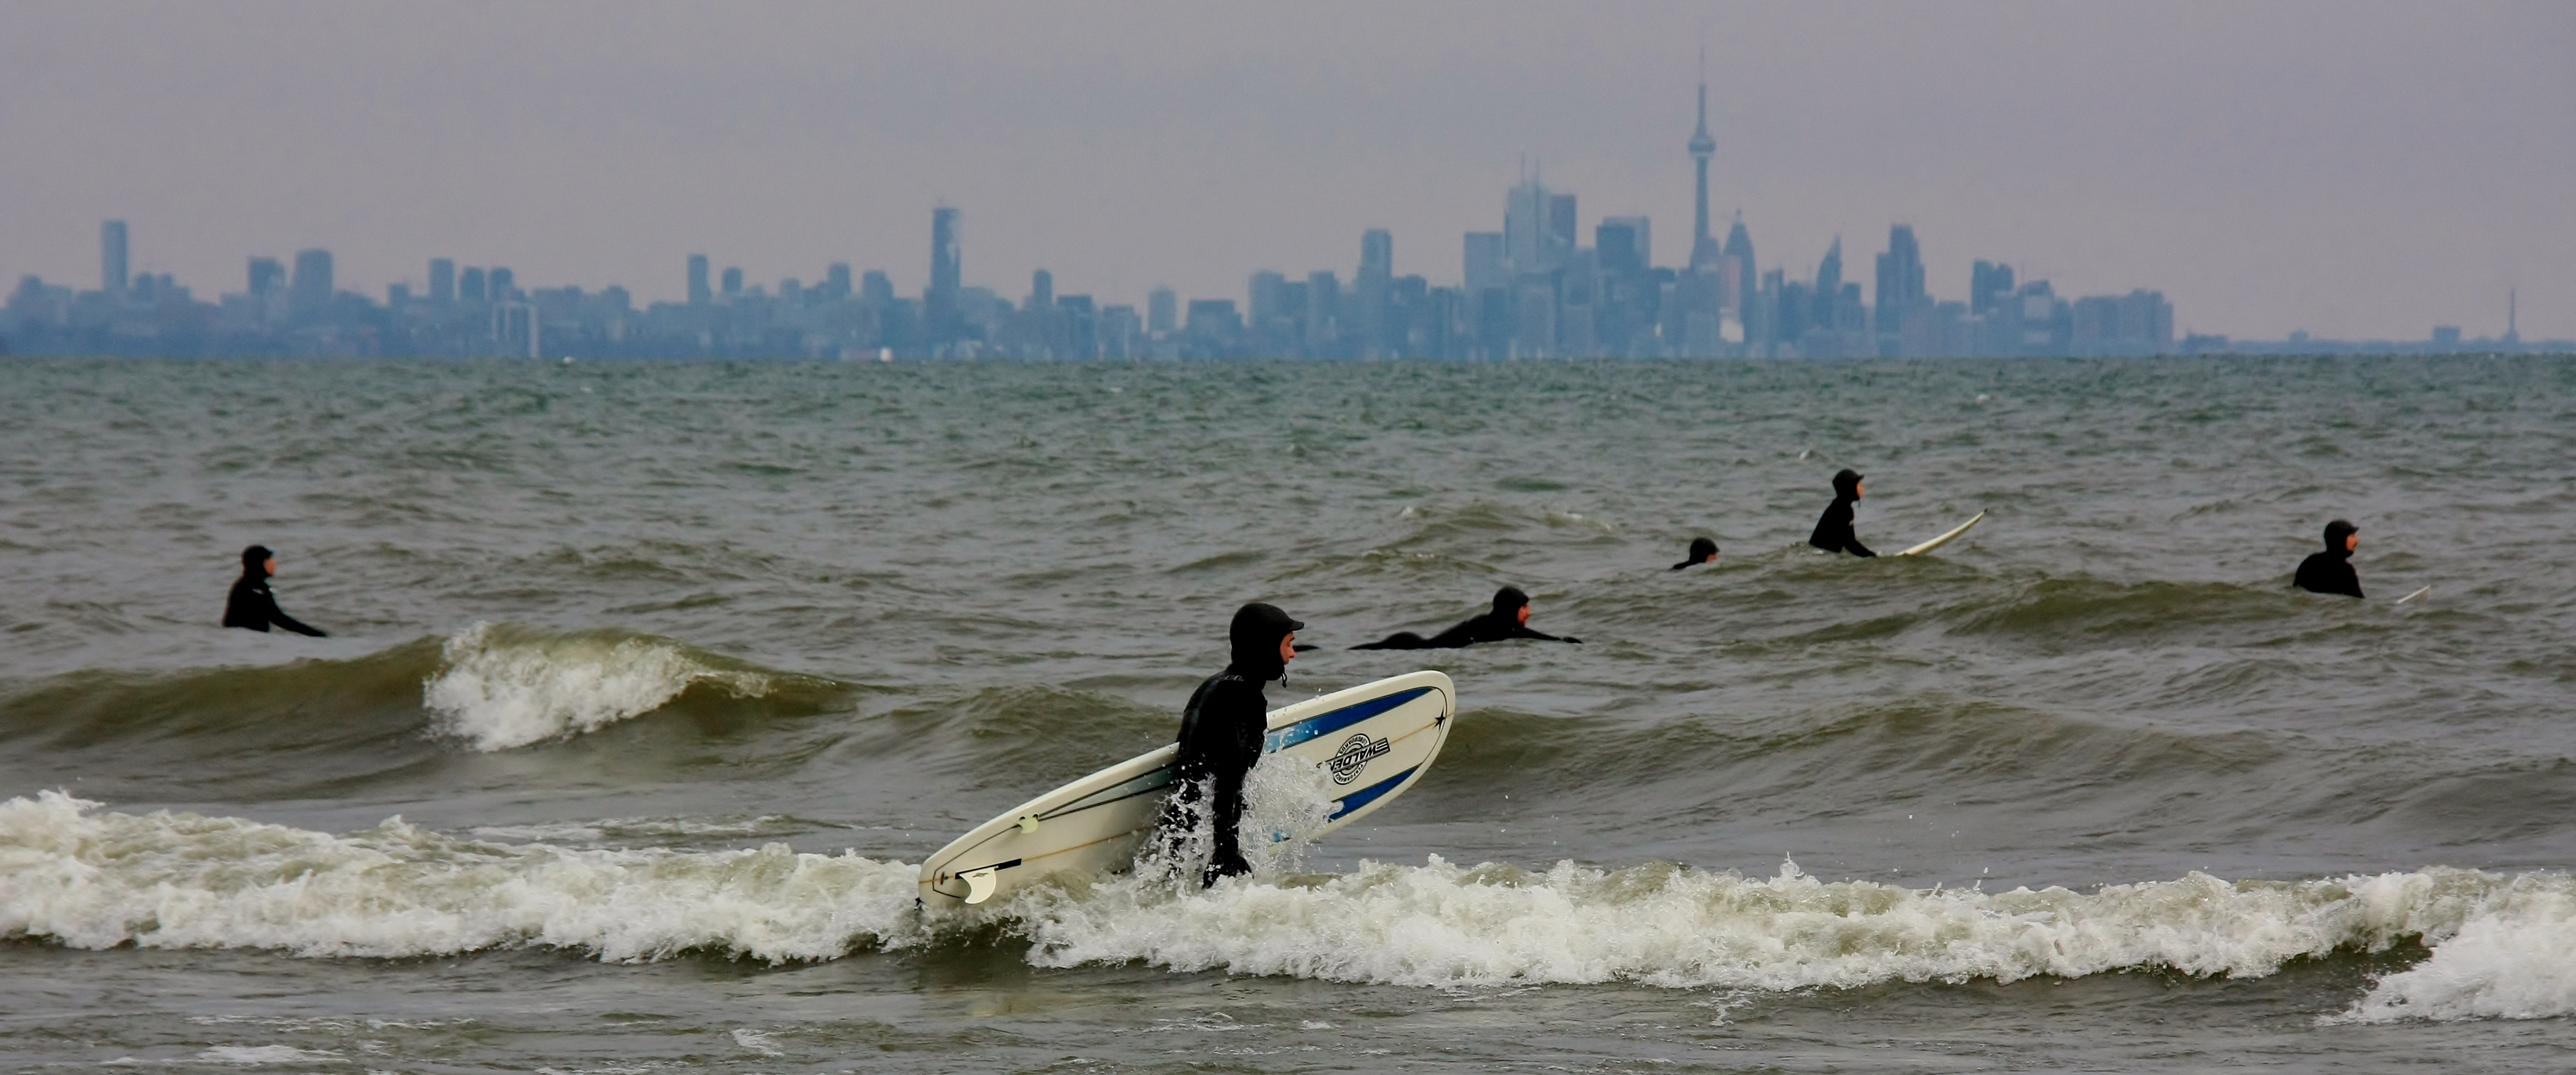 winter surfing, water quality, recreational water illness